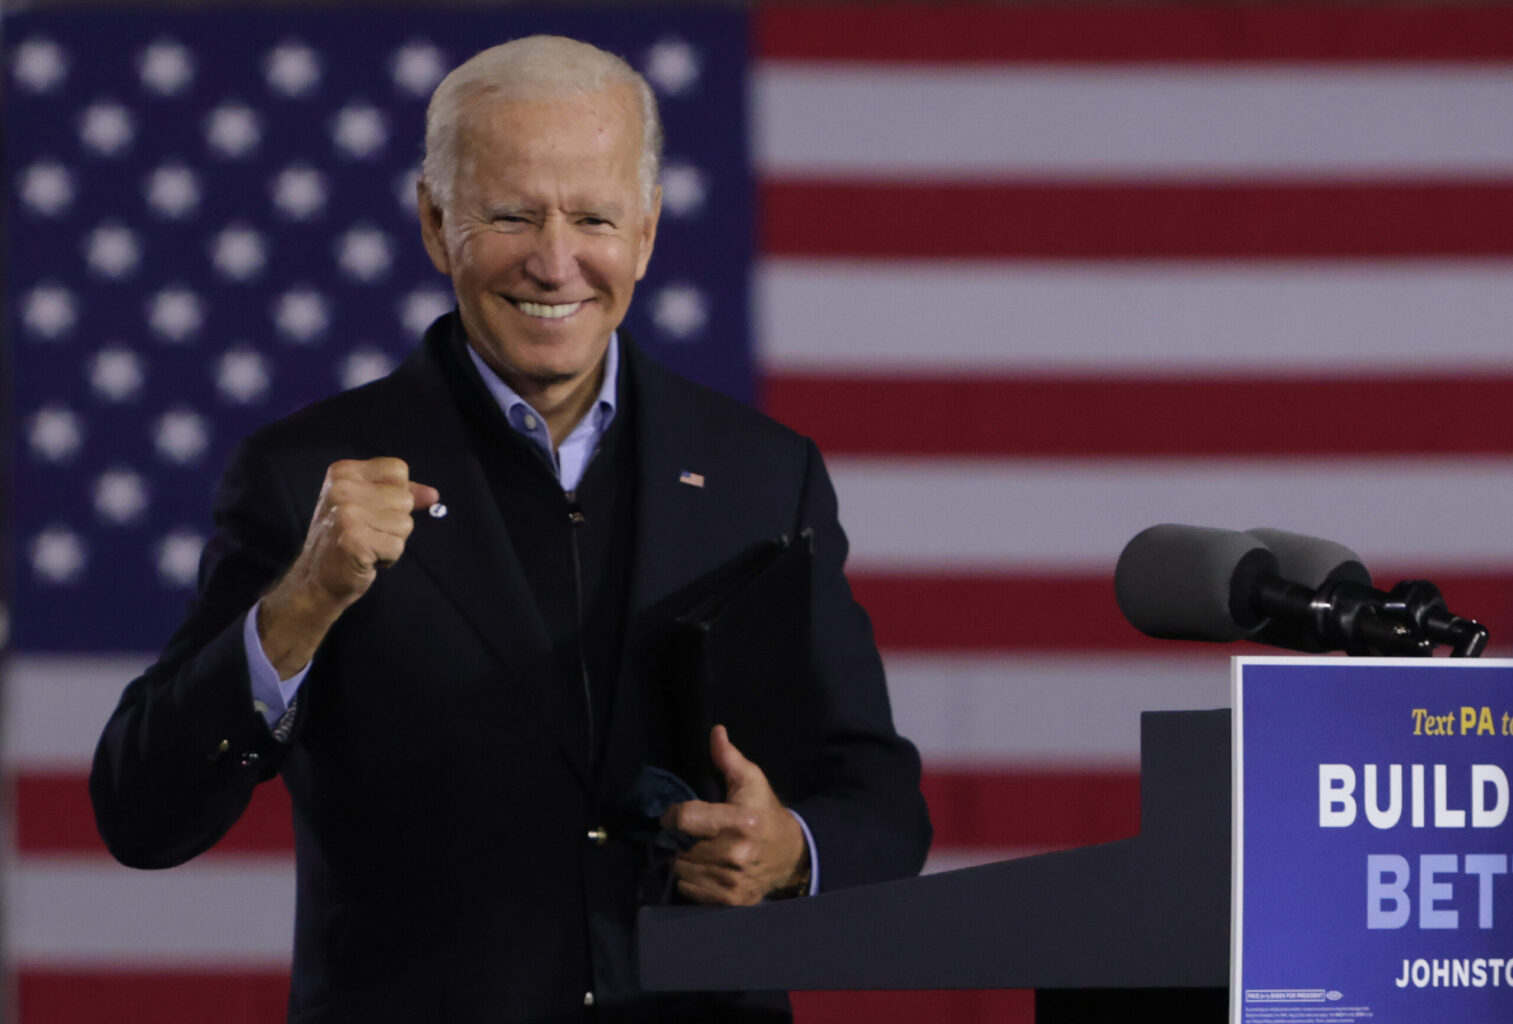 Biden Raised Three Times Trump's Fundraising Haul in the First Two Weeks of October